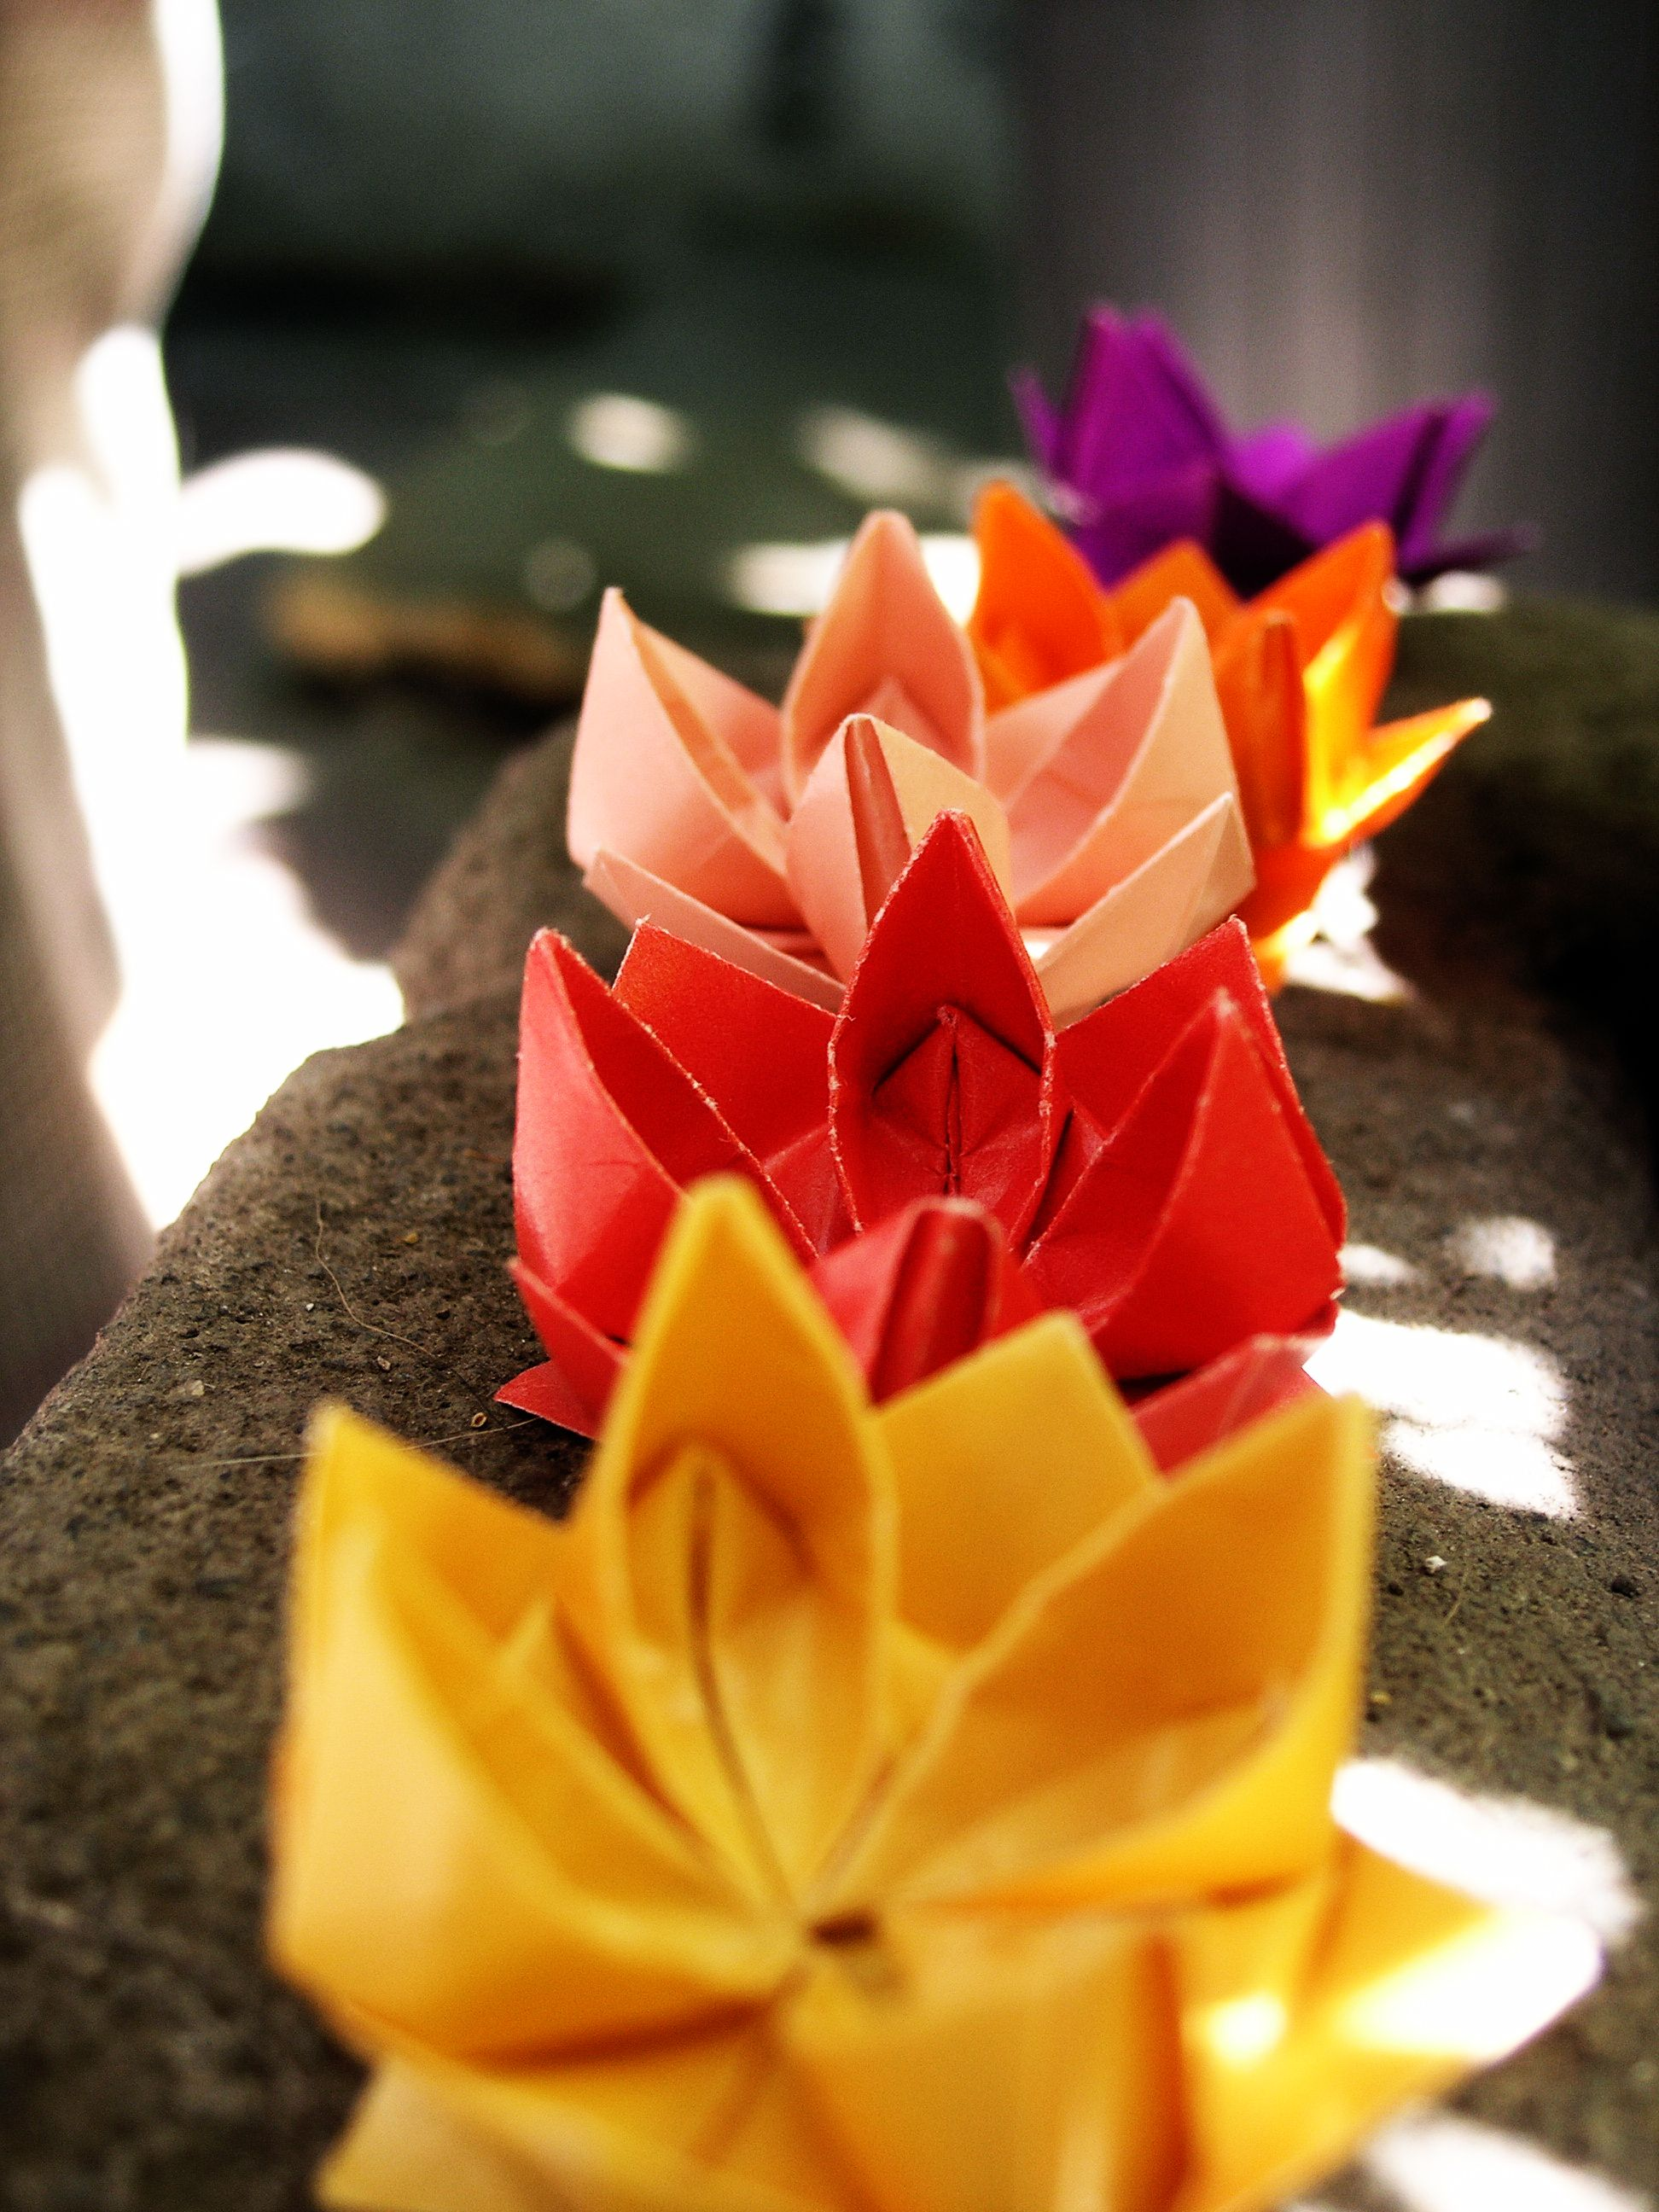 Origami lotus wedding pinterest origami lotus and flower then these origami lotus flowers are for you super cute origami lotus these are actually really easy once you get a hold on the technique mightylinksfo